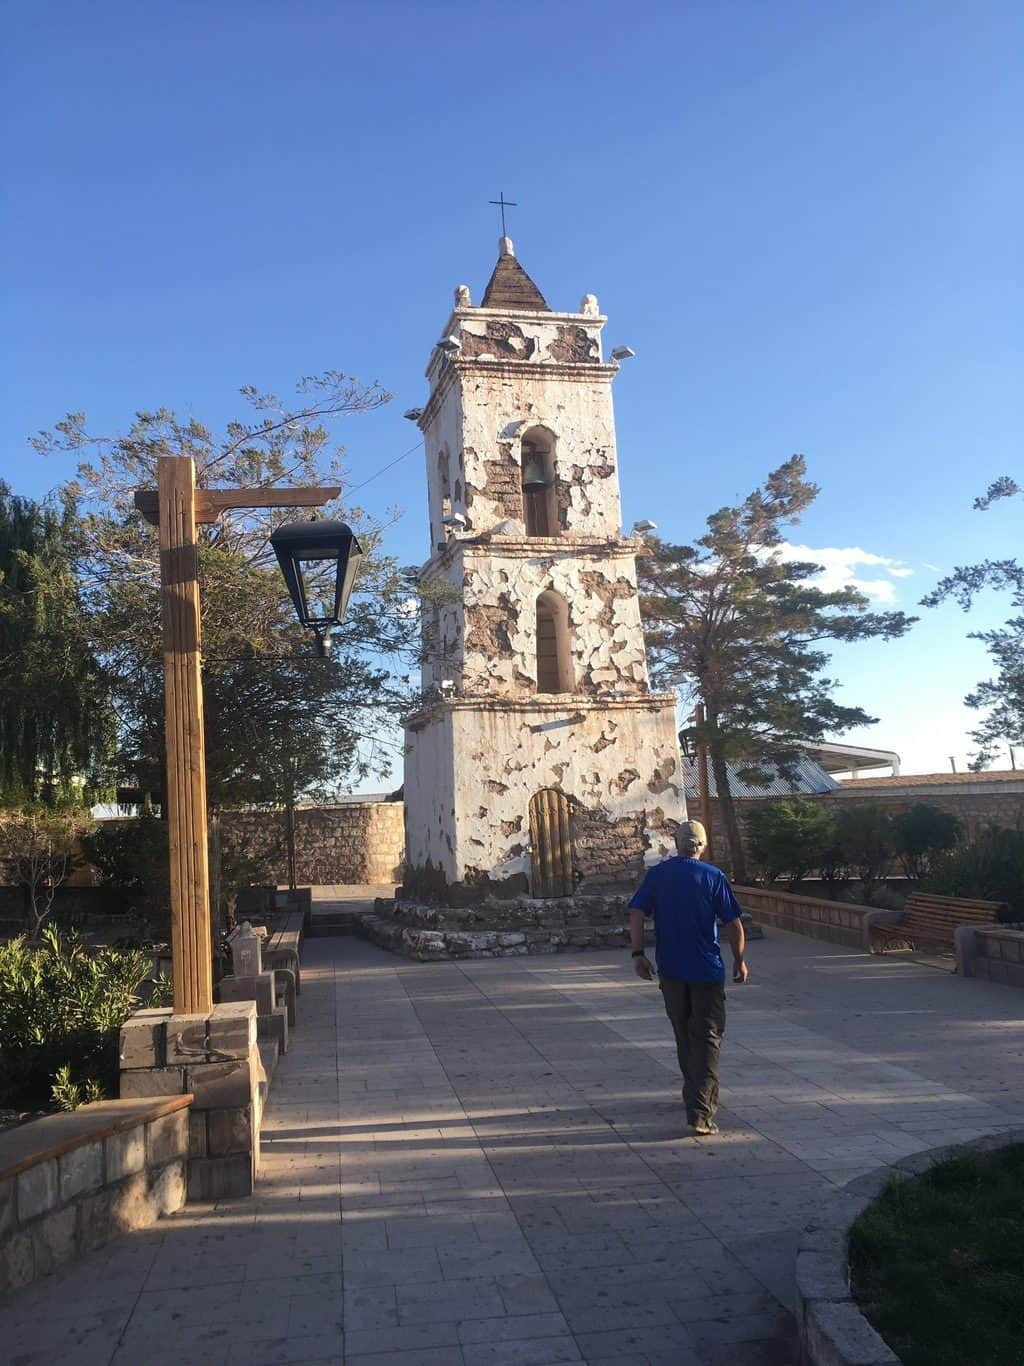 Day 2 - Historic Bell In Toconao